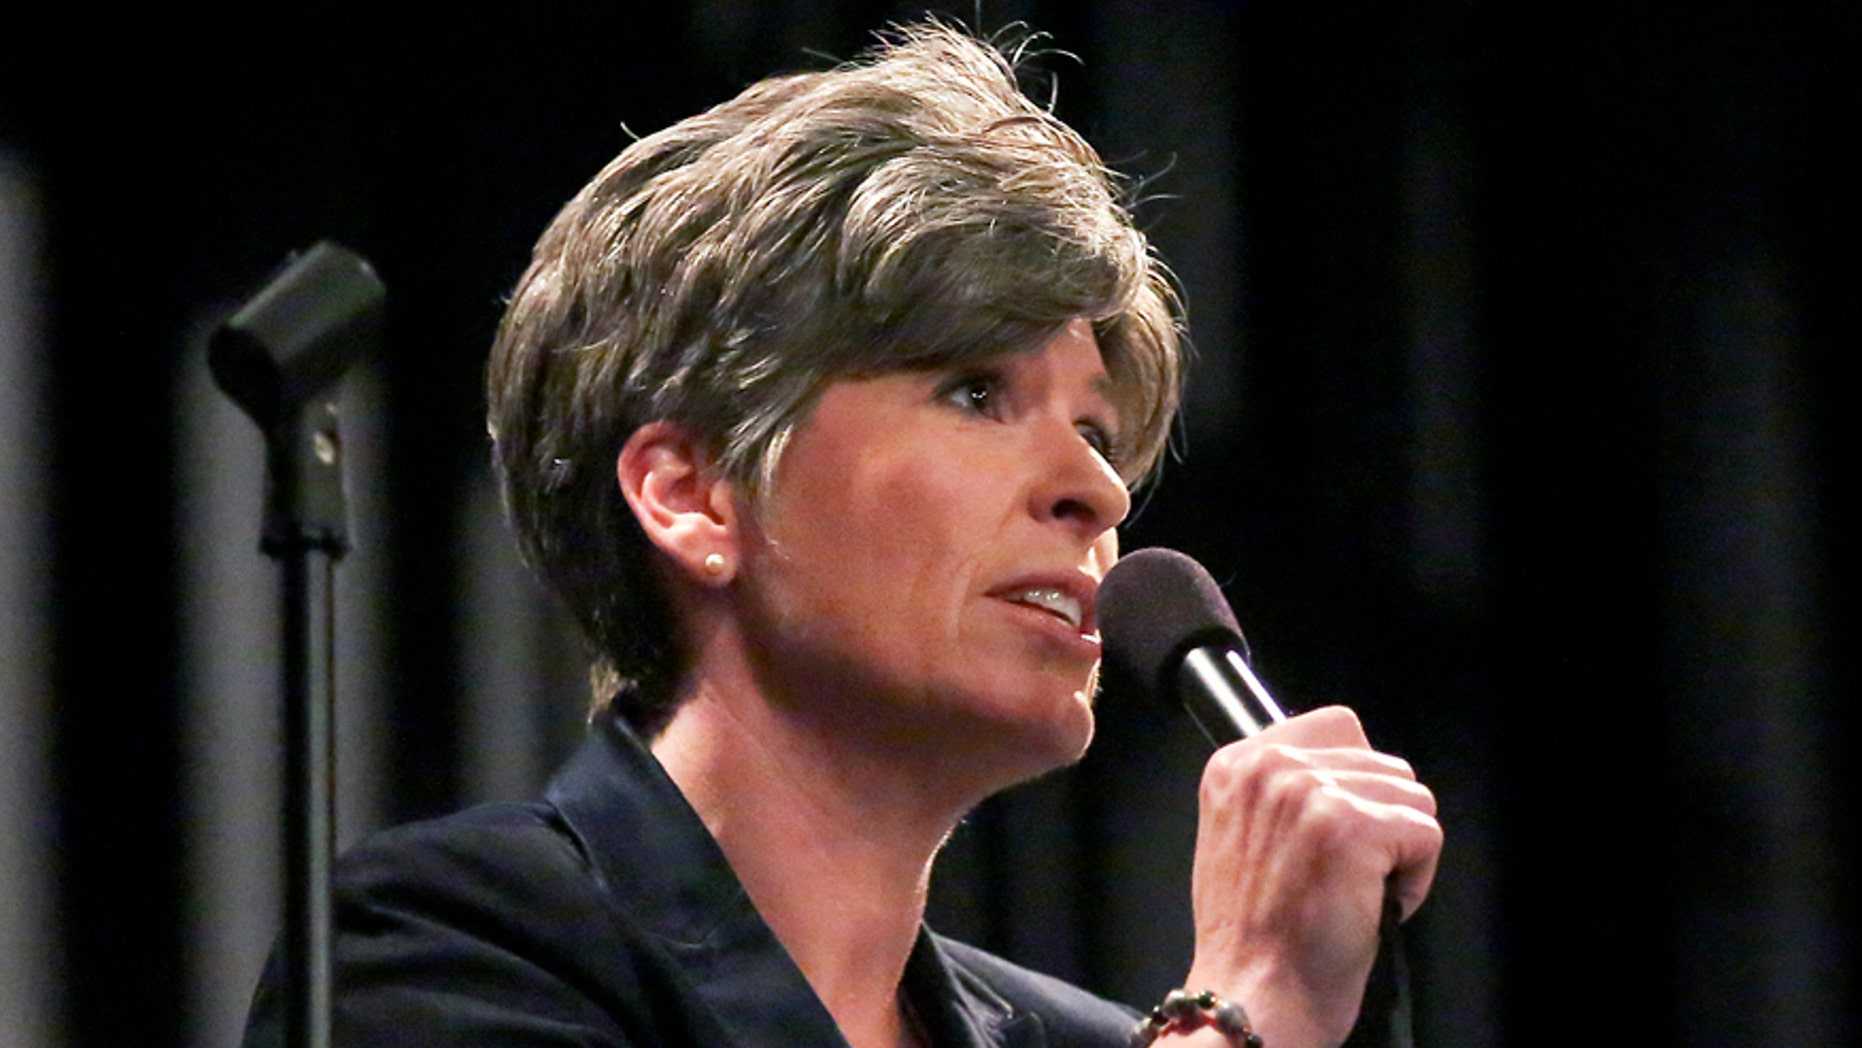 In a Monday, April 10, 2017 photo, U.S. Sen. Joni Ernst, R-Iowa, speaks during a town hall meeting at Central Community School auditorium in Elkader, Iowa. (Nicki Kohl/Telegraph Herald via AP)